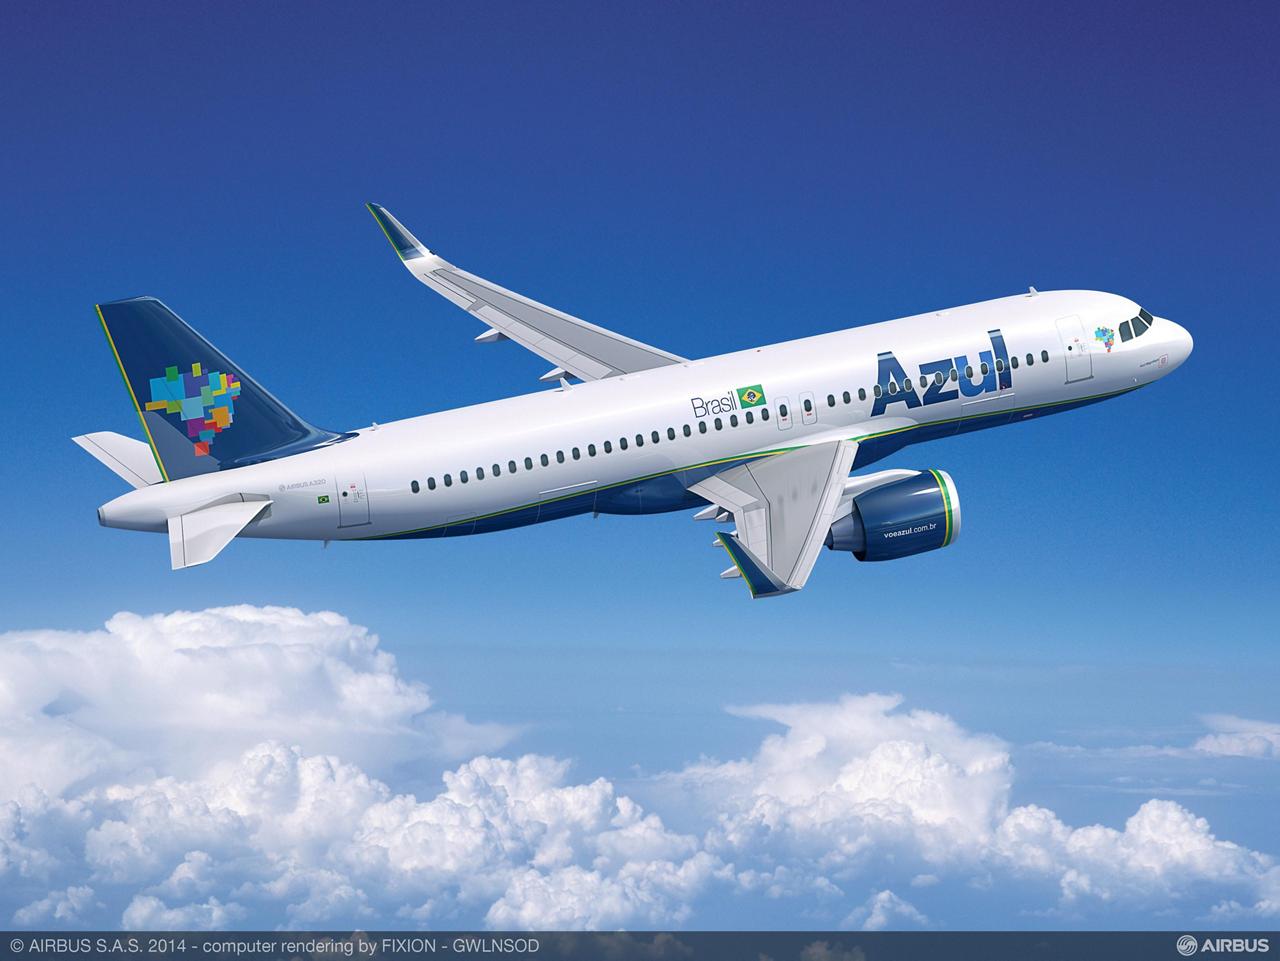 Azul Brazilian Airlines has signed a purchase agreement with Airbus for 35 A320neo (new engine option) Family aircraft, which will be used for domestic long-haul service and high-density routes along with 28 additional A320neo aircraft the carrier is leasing